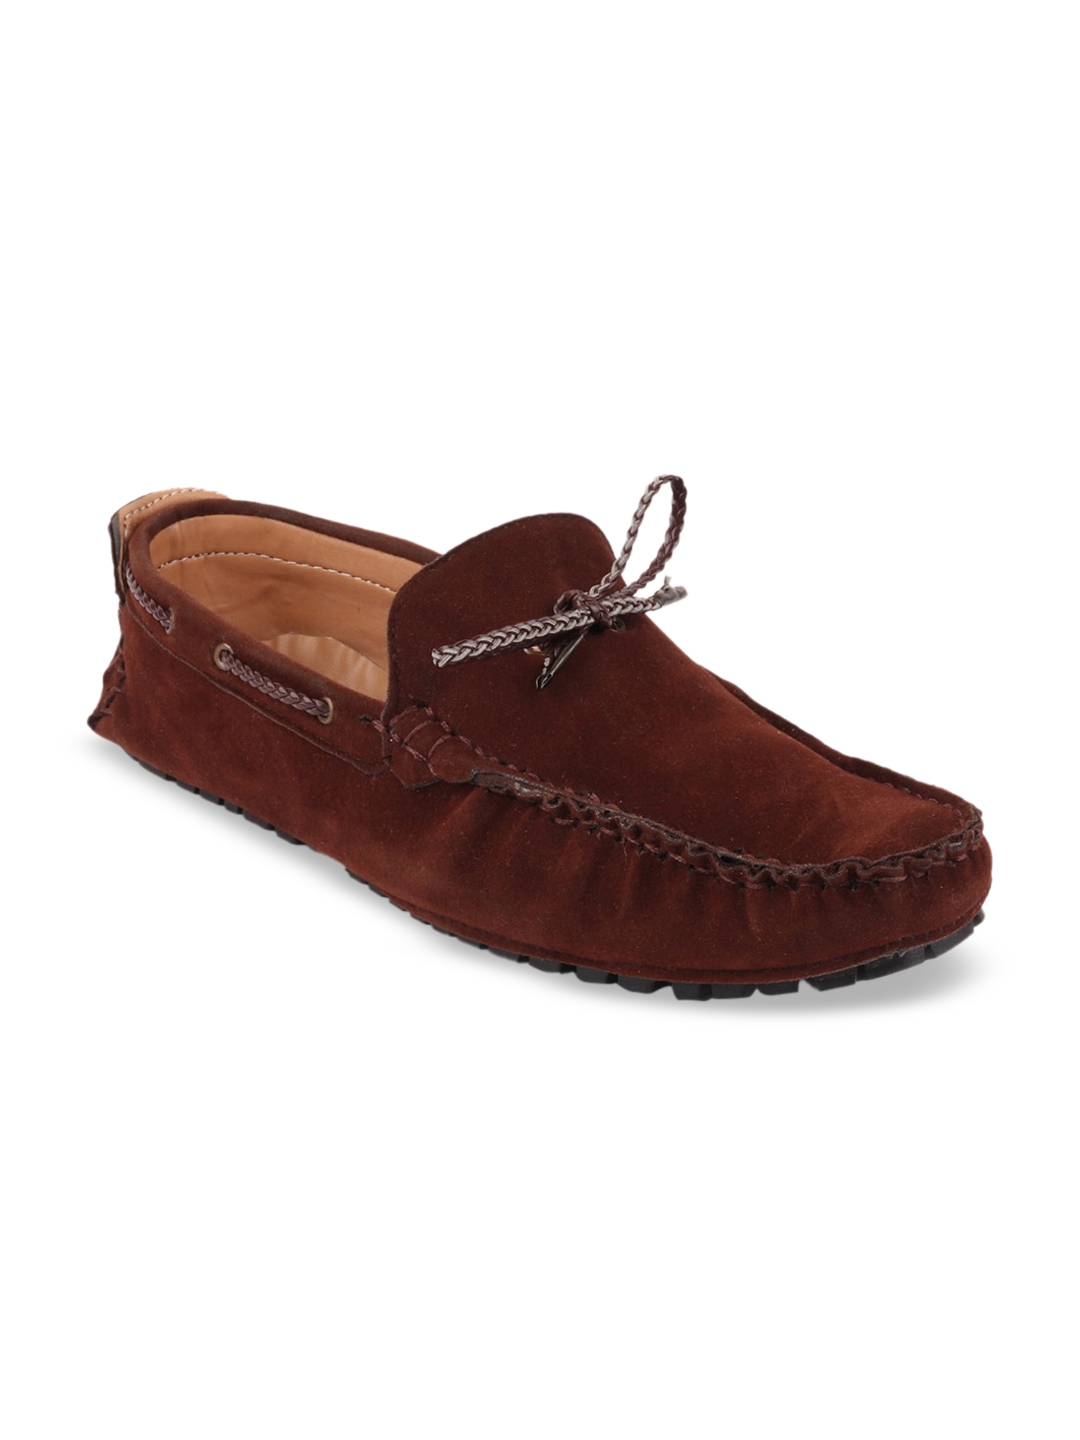 FAUSTO Men Brown Suede Leather Lightweight Boat Shoes